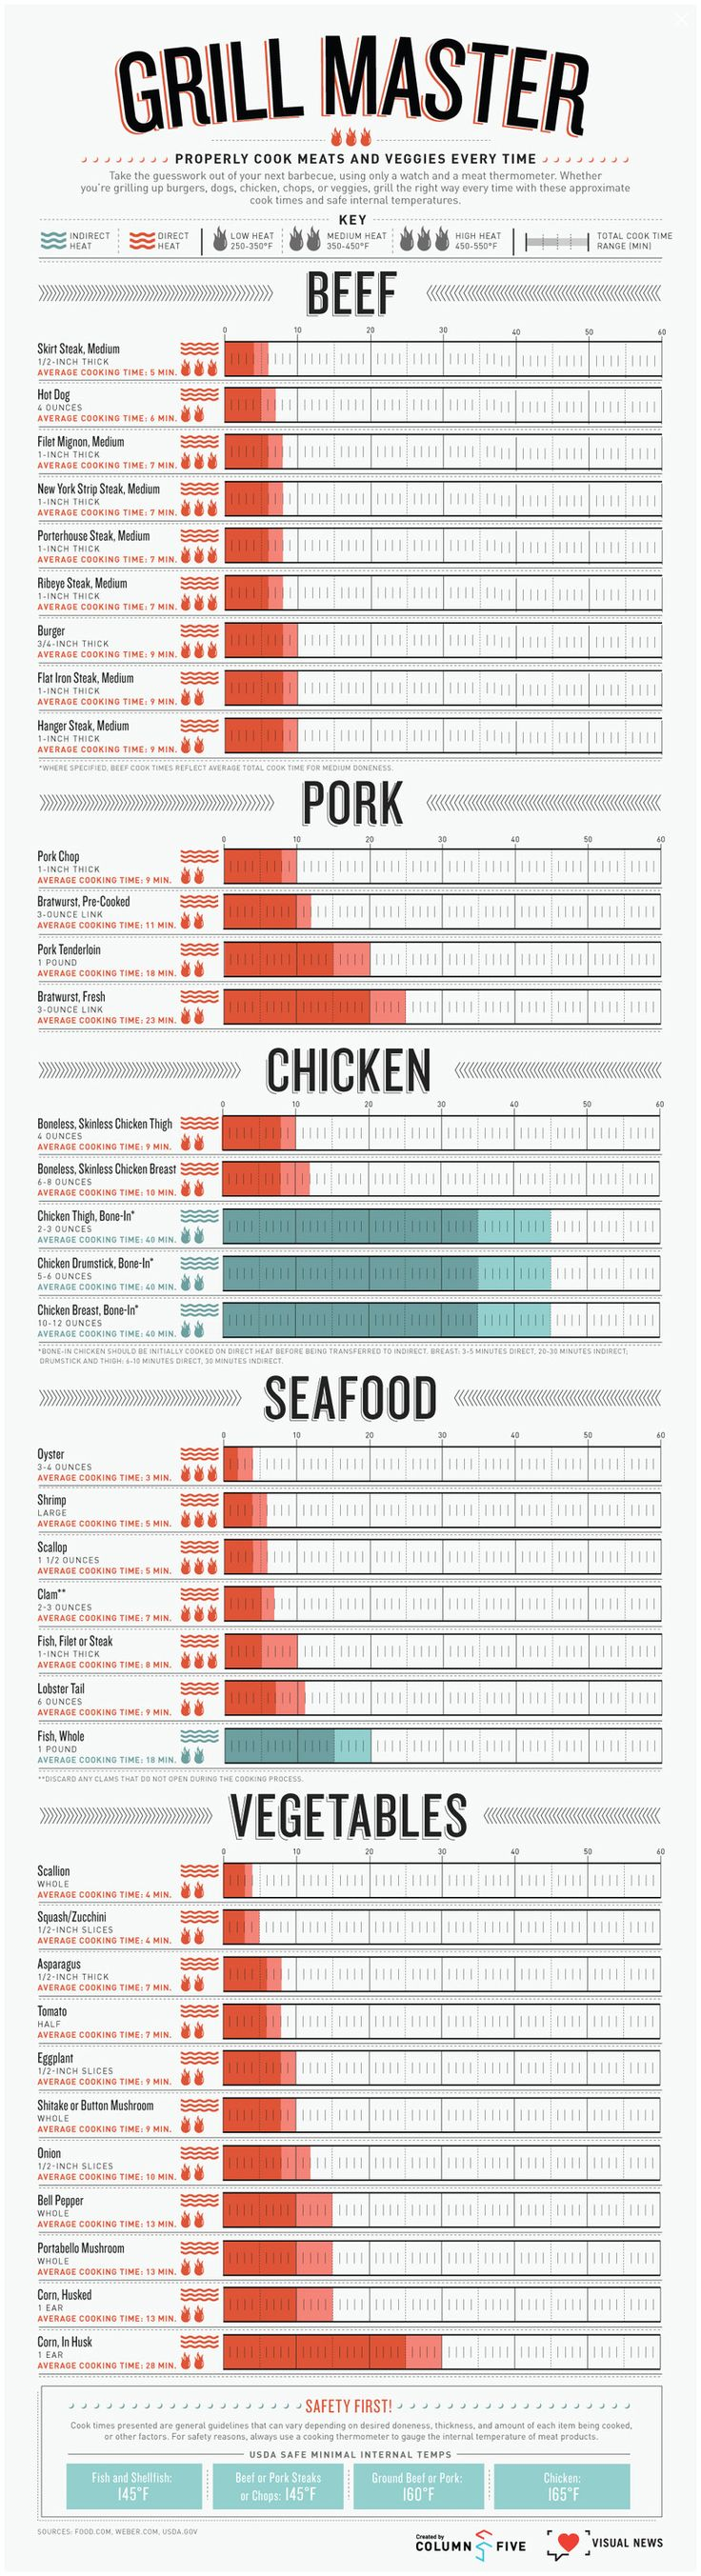 Ultimate Cheat Sheet For Grilling - Best Cheat Sheet This Year!